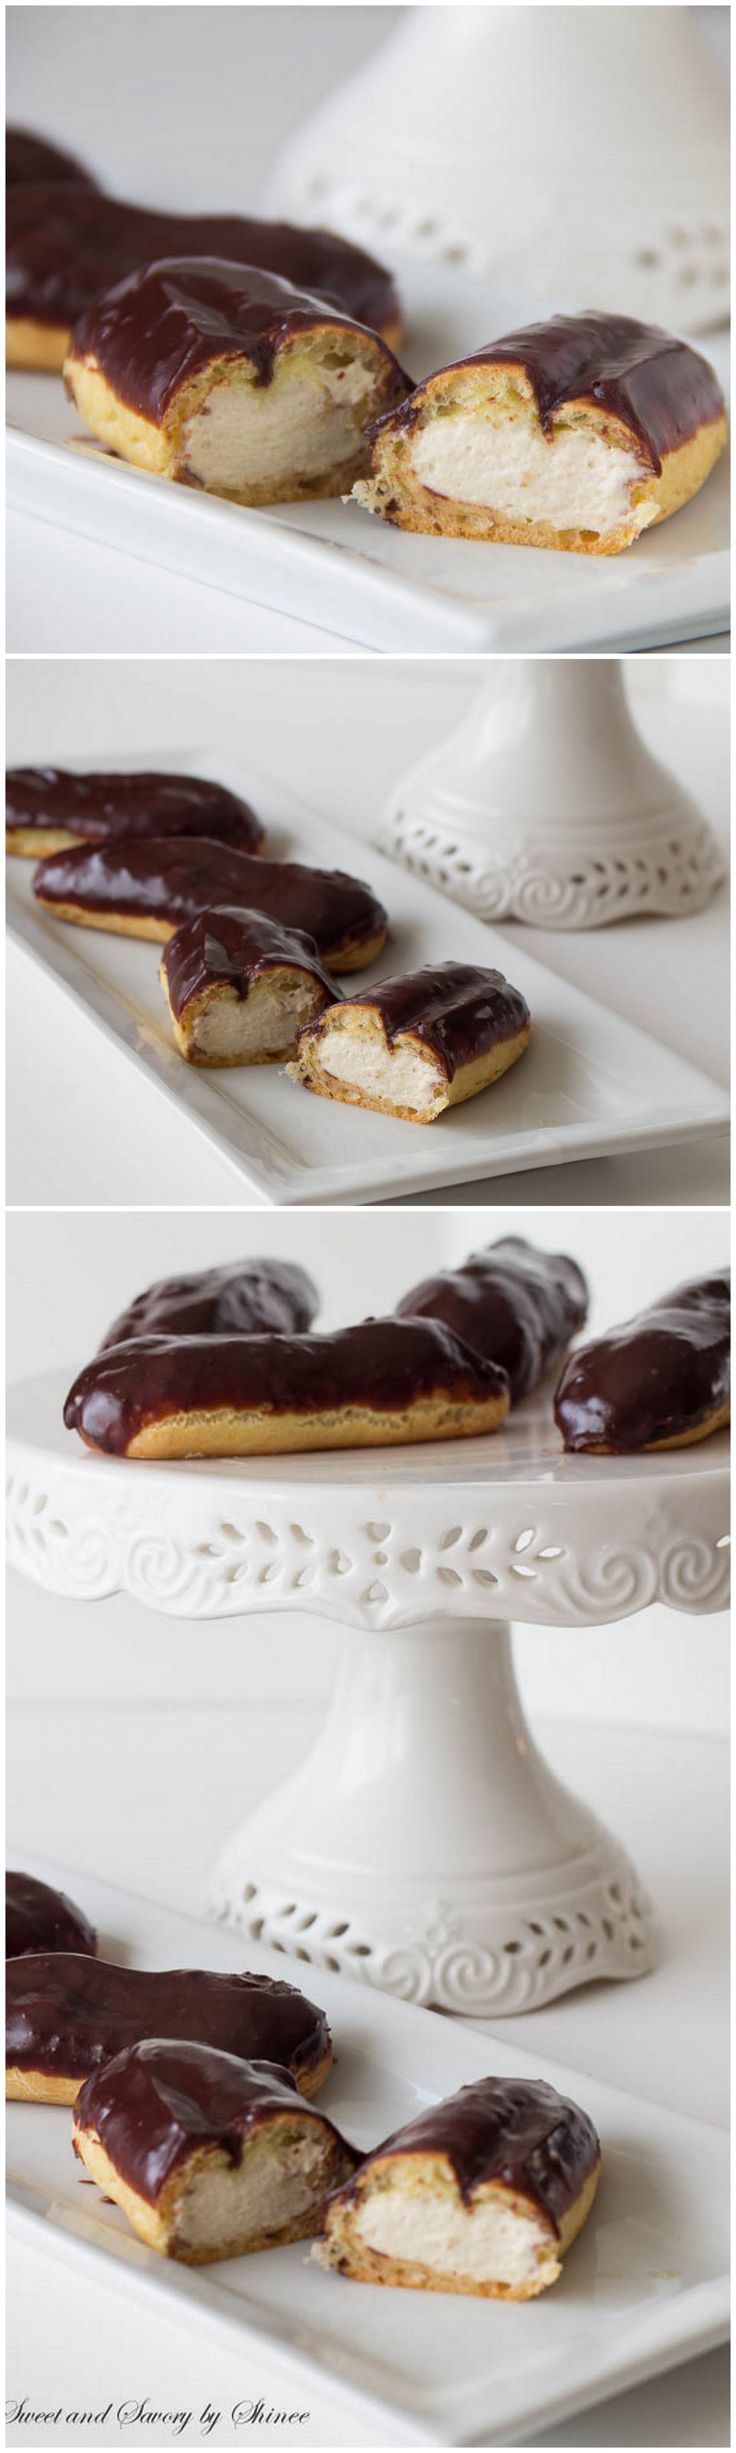 Delicious eclairs filled with vanilla pastry cream from scratch. Step-by-step photo recipe is included. ~Sweet and Savory by Shinee